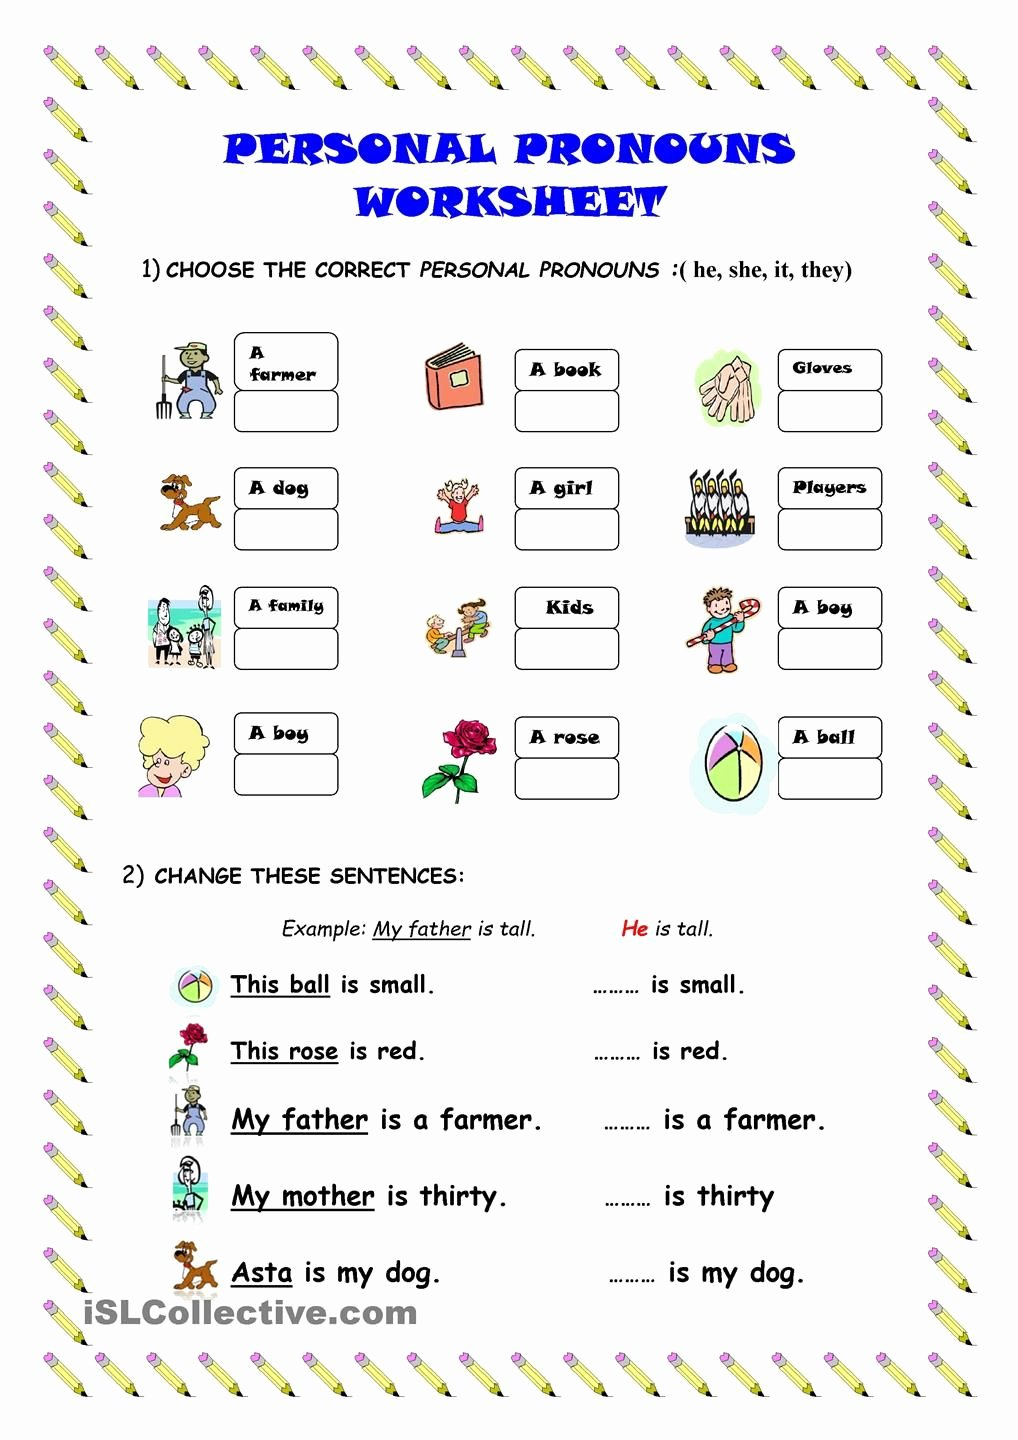 hight resolution of Personal Pronouns Worksheets for Preschoolers Inspirational Possessive  Pronouns His Her Worksheets Worksheet Games to – Printable Worksheets for  Kids